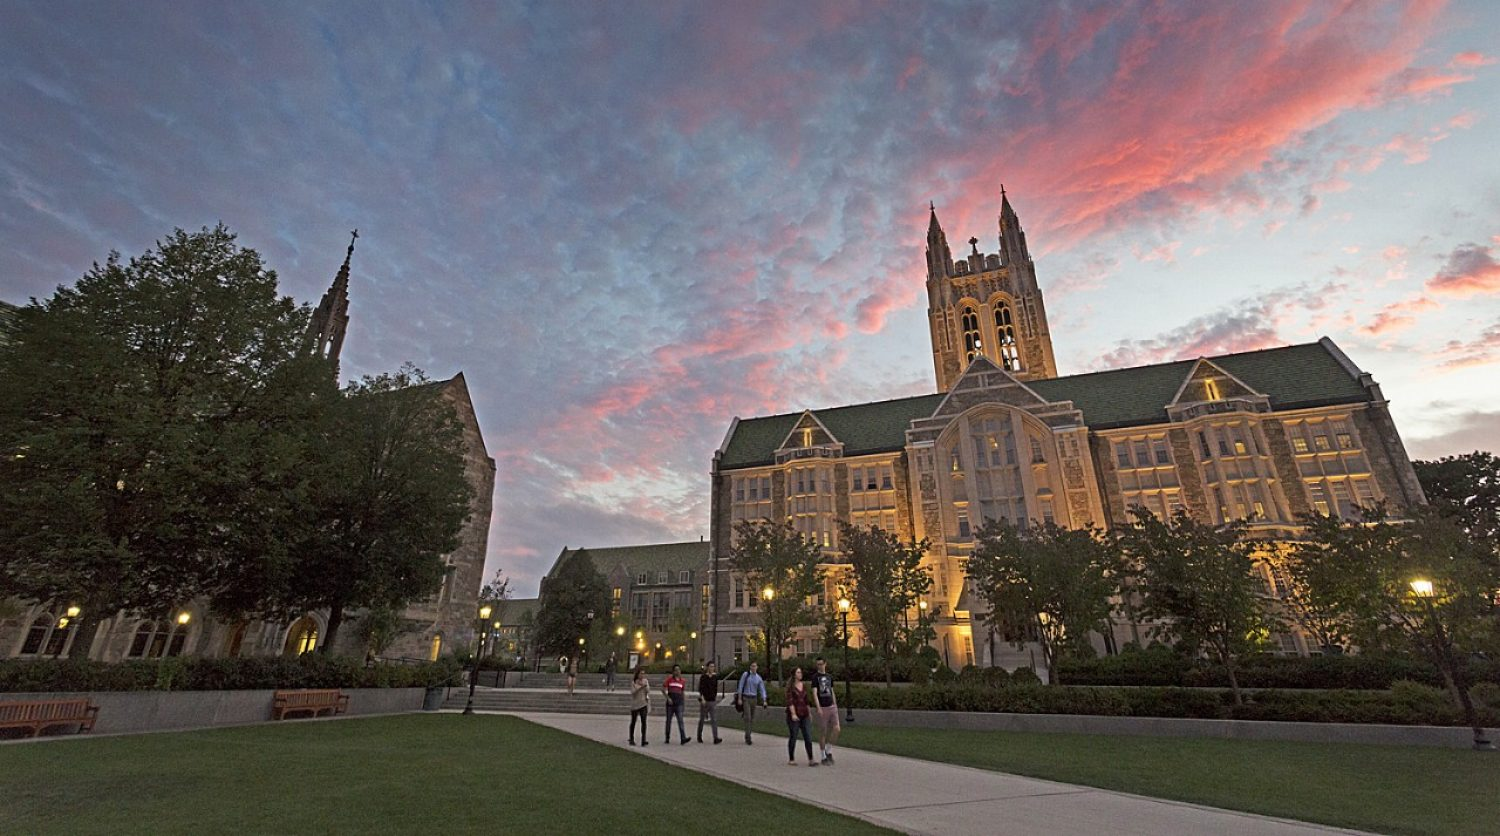 Gasson hall at susnet